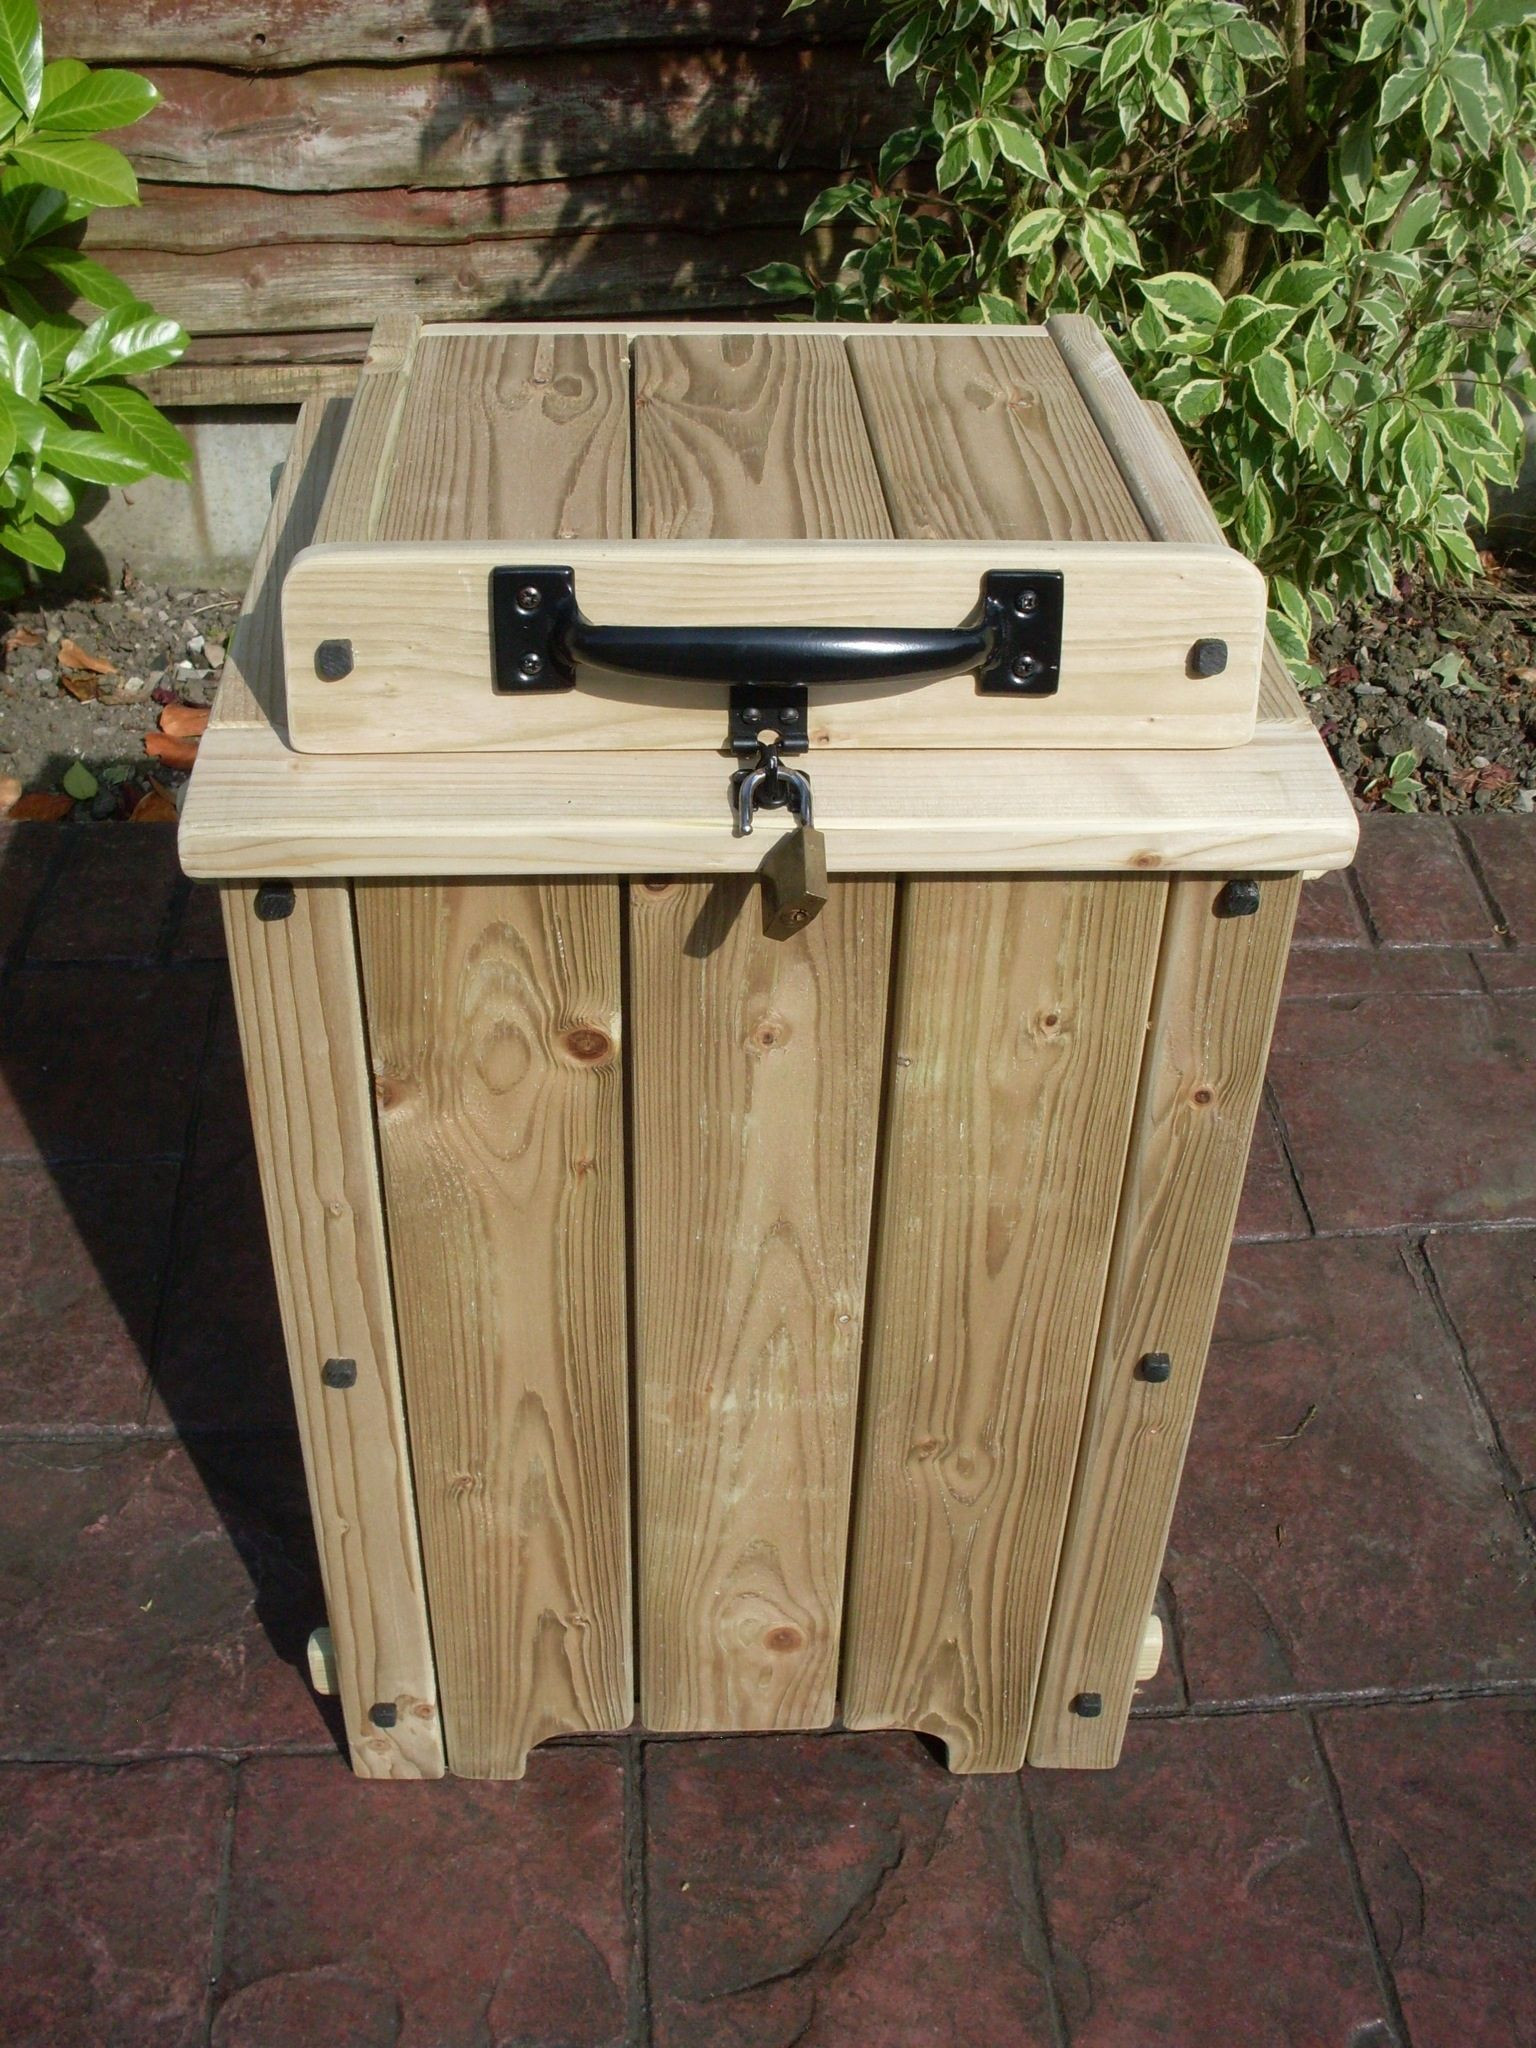 DIY Parcel Box  Parcel drop box KH Garden furniture Sturdy